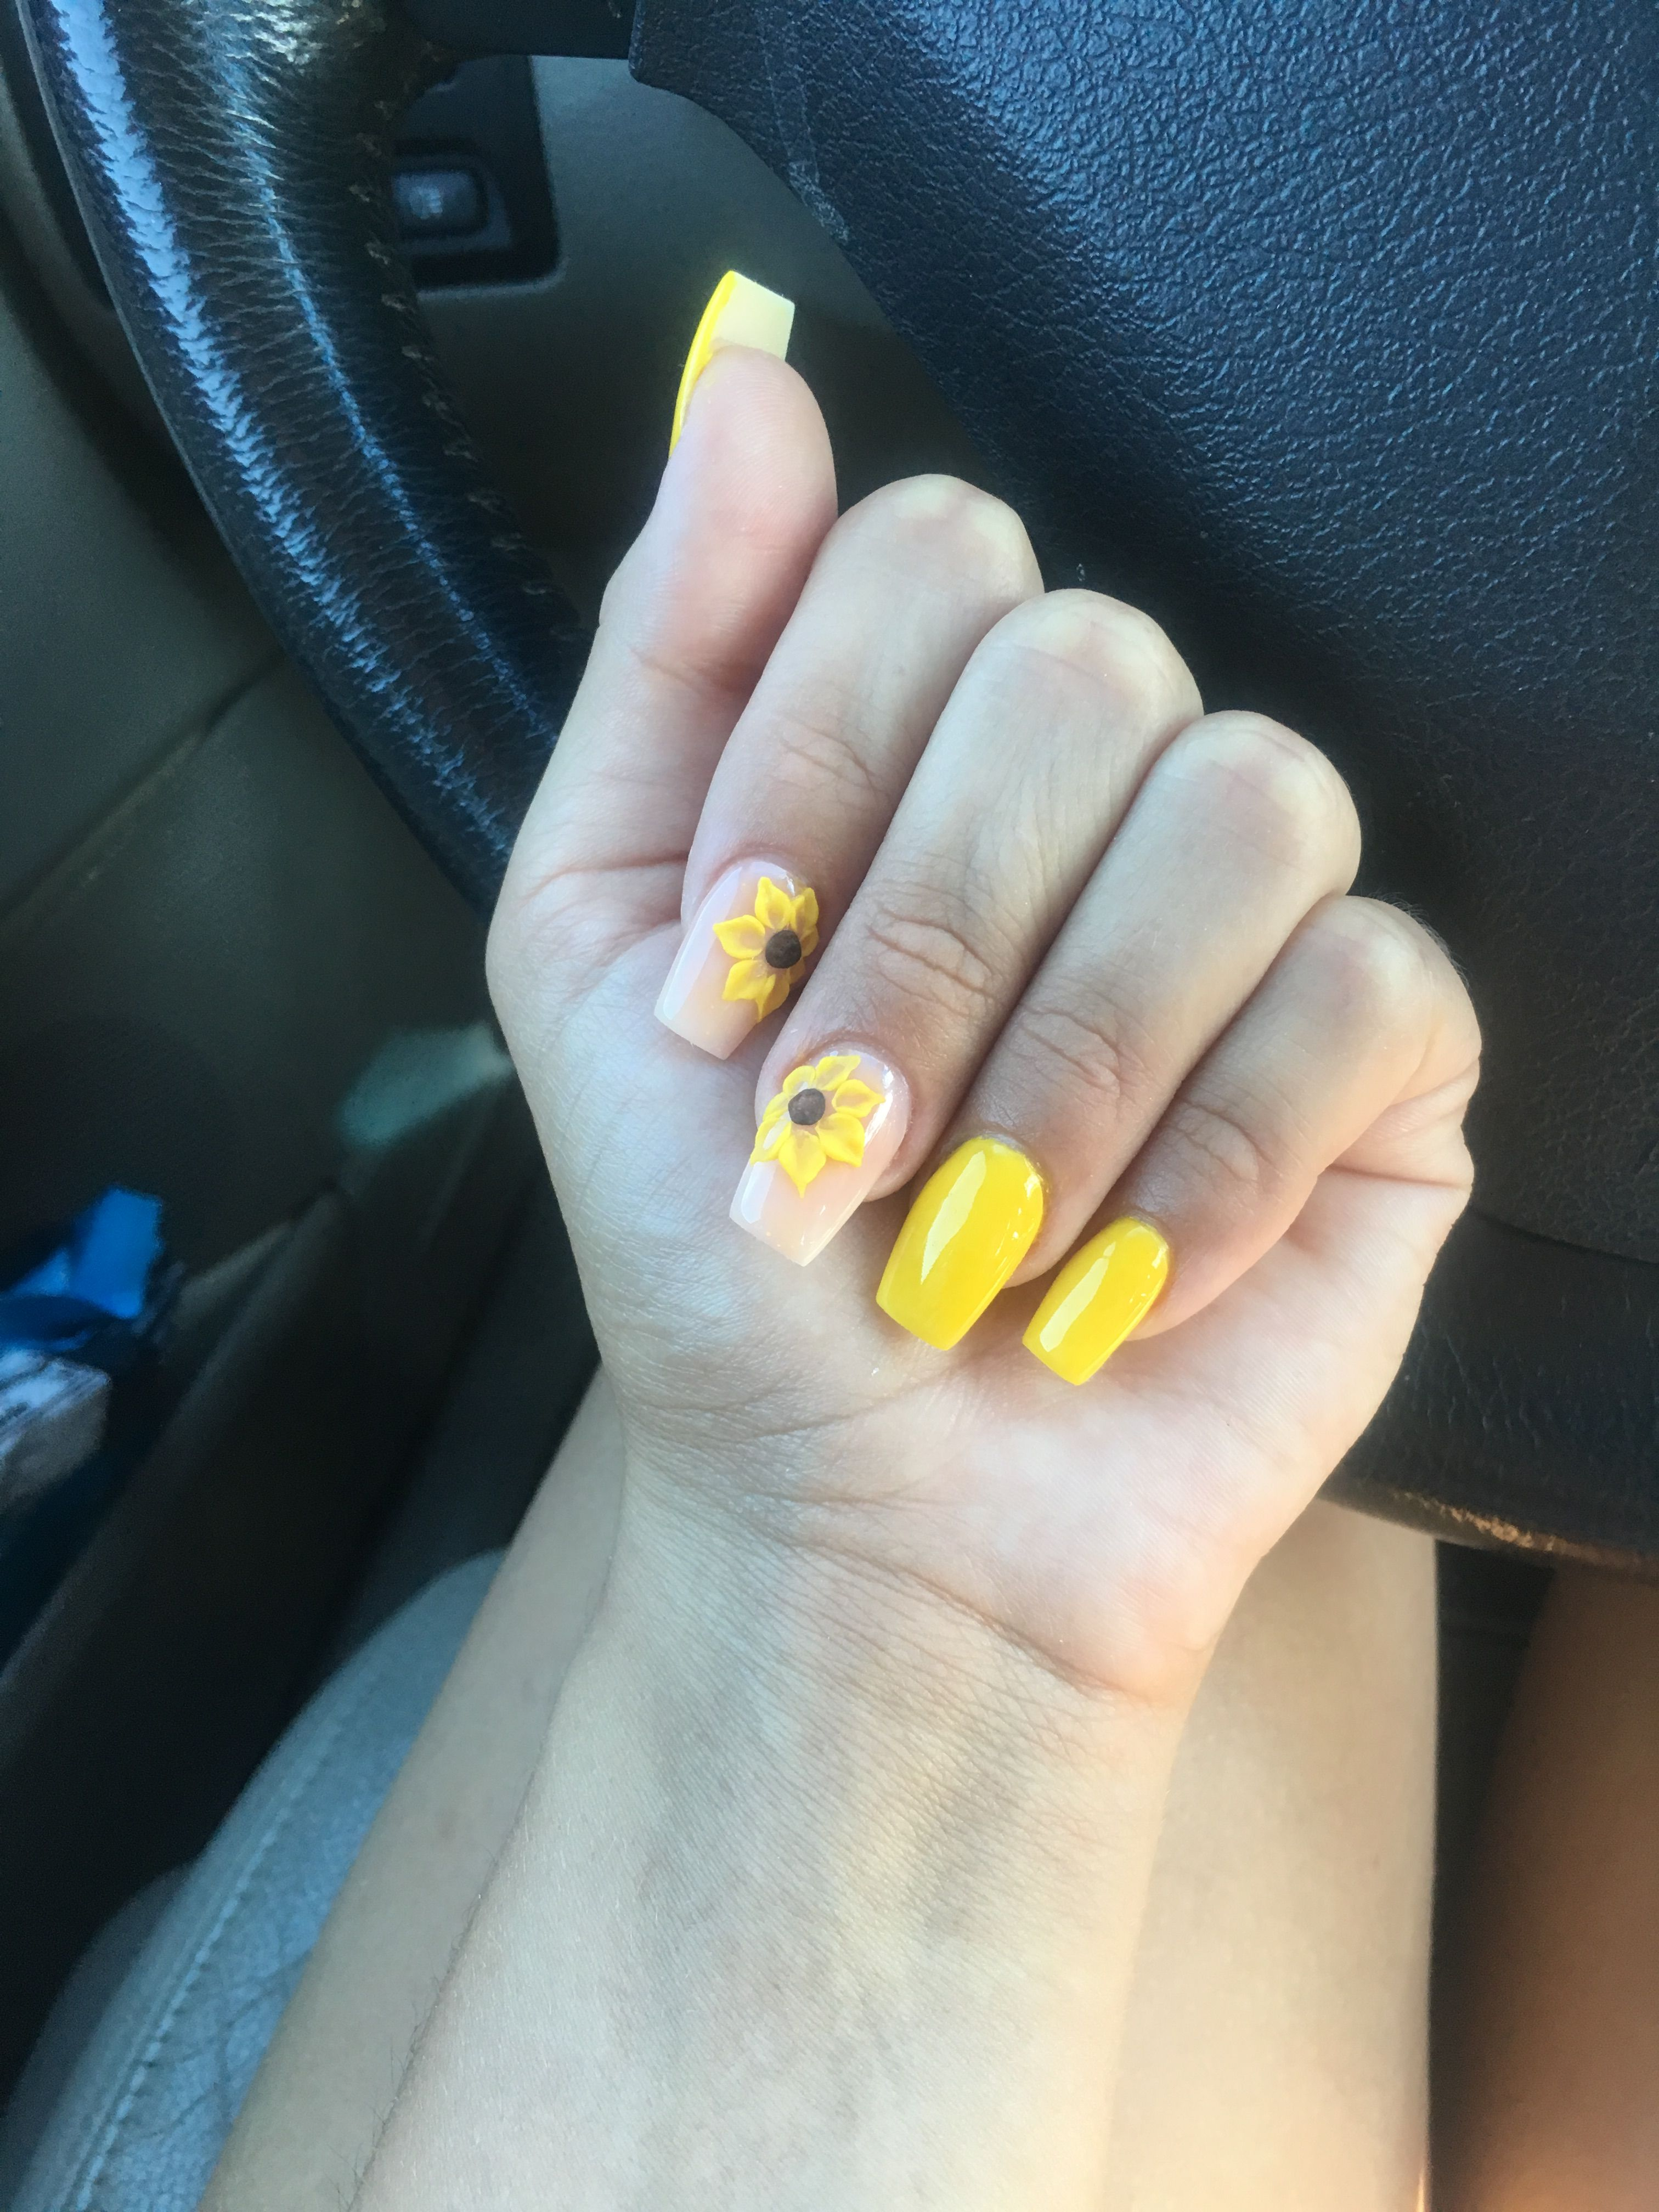 Yellow Short Coffin Shaped Acrylics With Sunflowers Acrylic Nails Yellow Acrylic Nails Coffin Short Sunflower Nails